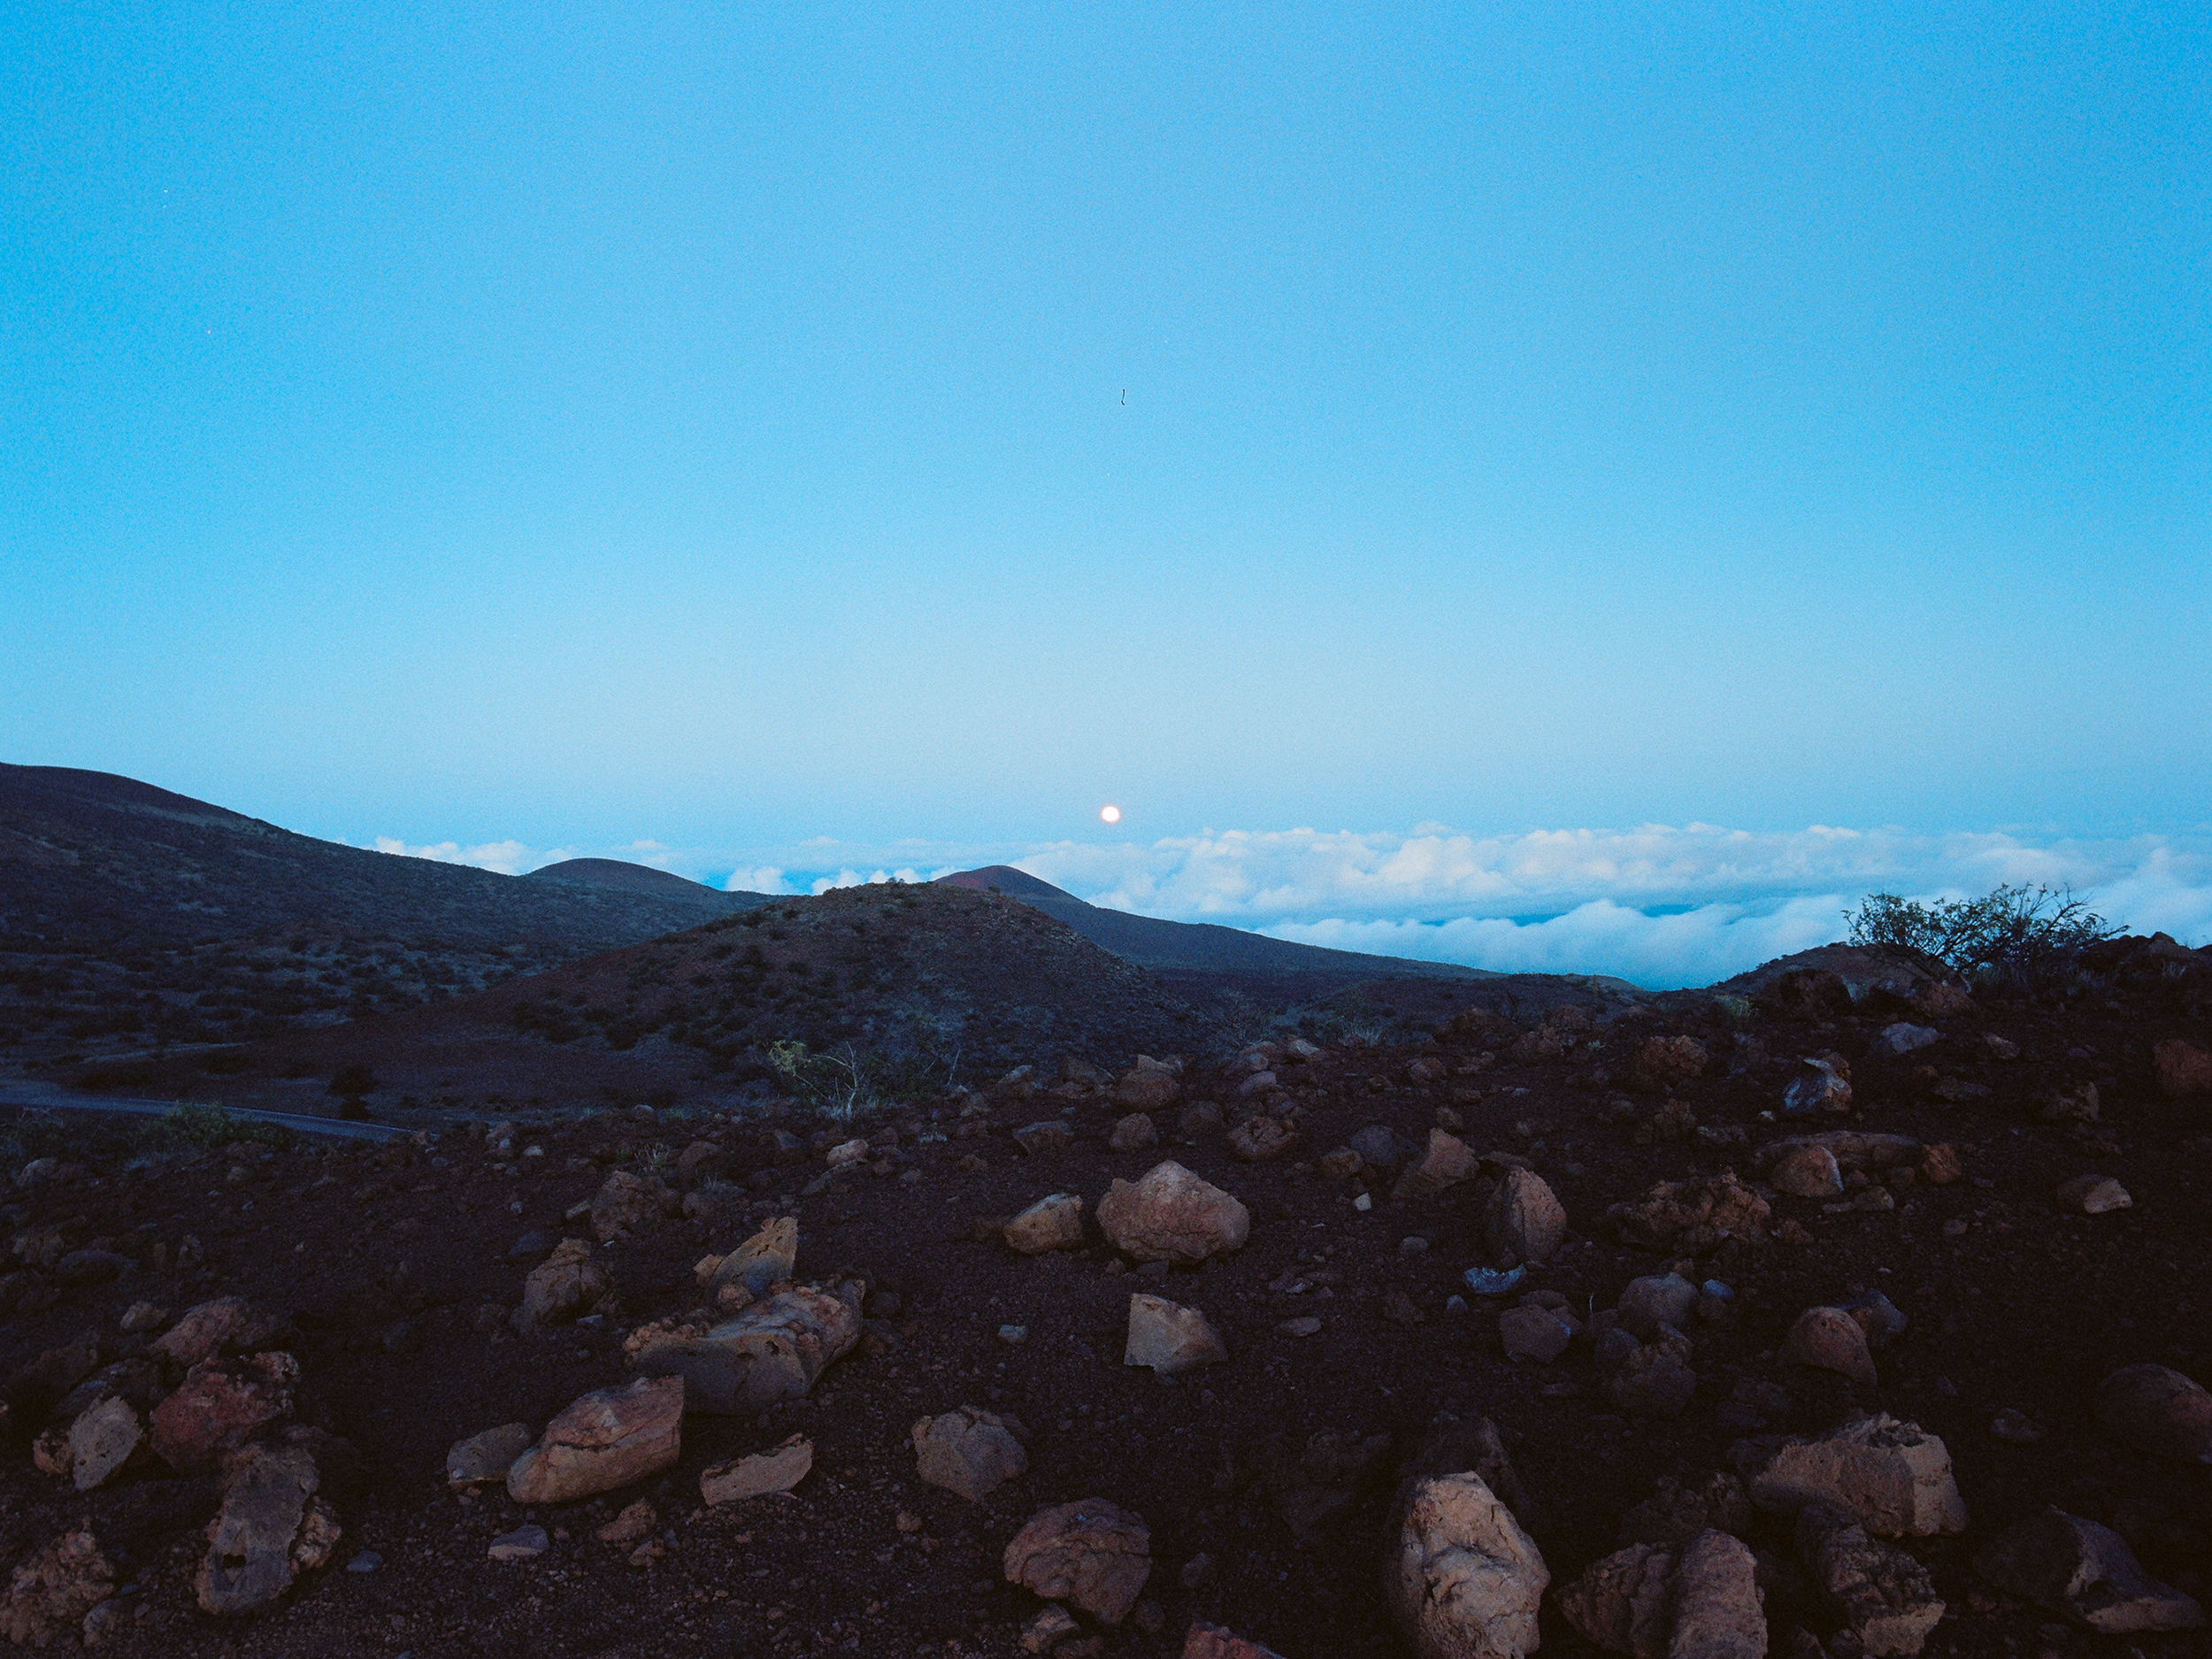 Moonrise at Mauna Kea